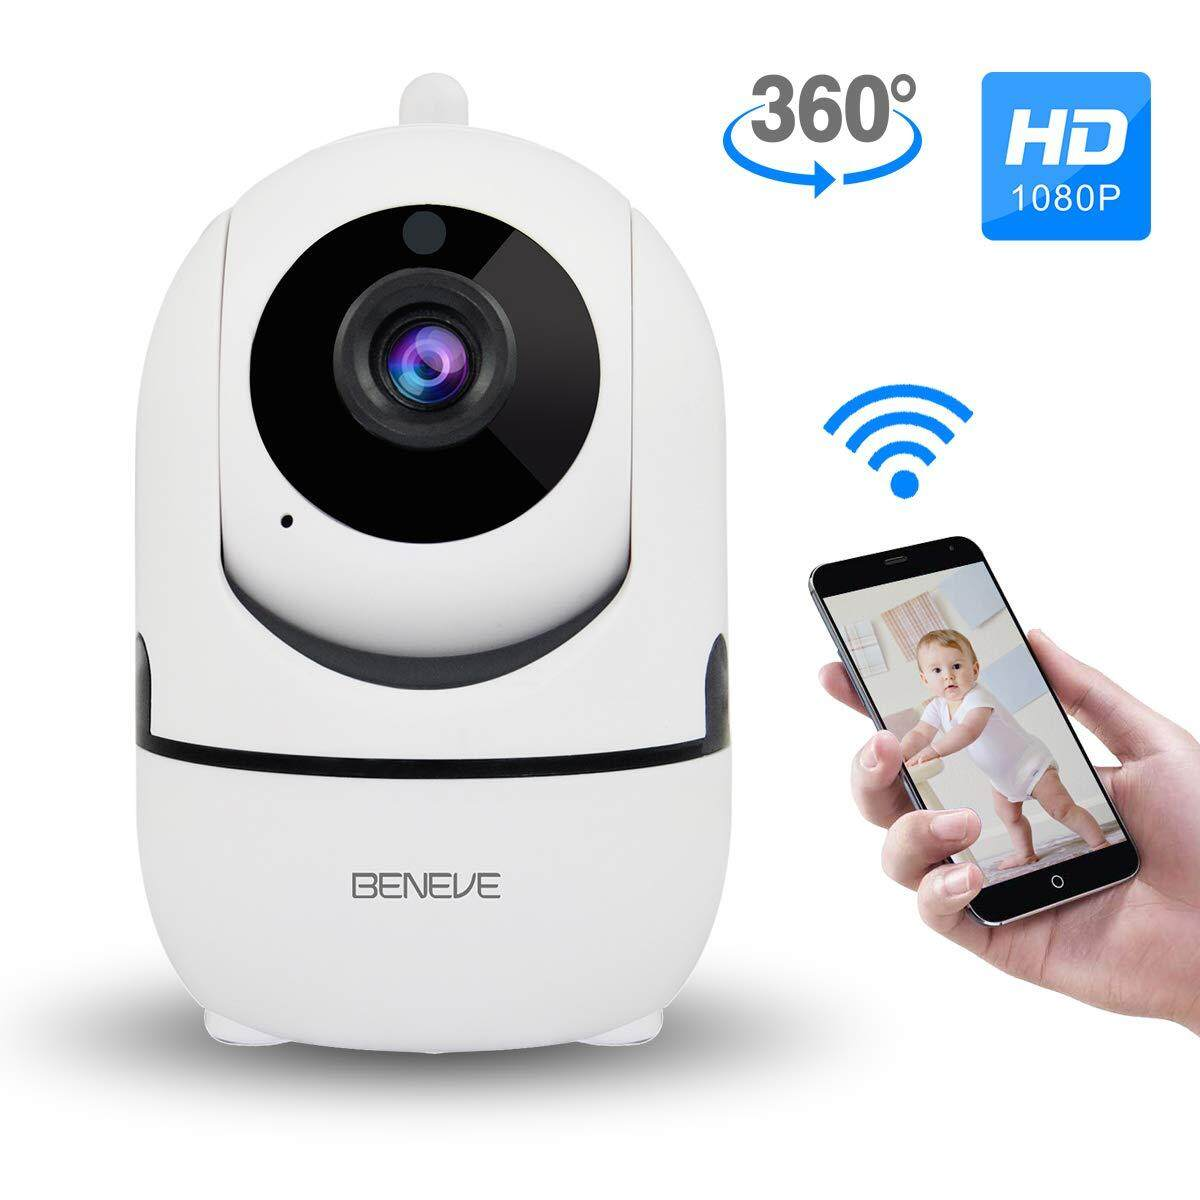 720p Wifi Panoramic Camera 360 Degree Fish-eye Smart Home Security Surveillance Baby Monitor Webcam Wireless Night Vision Camera Video Surveillance